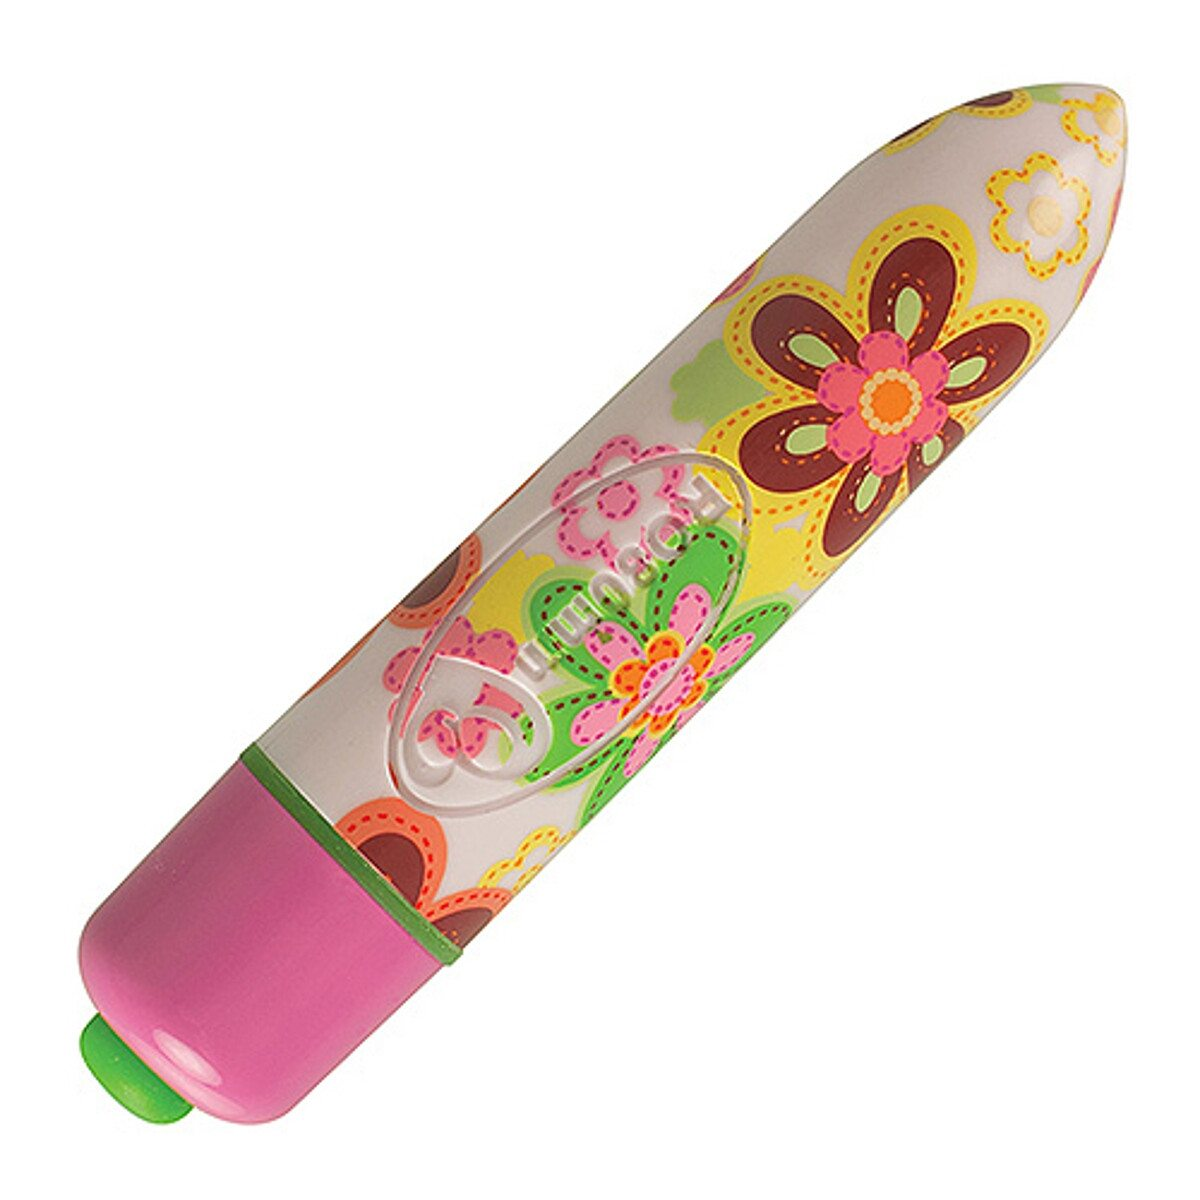 Vibrador de 7 etapas Rocks Off Flower Power